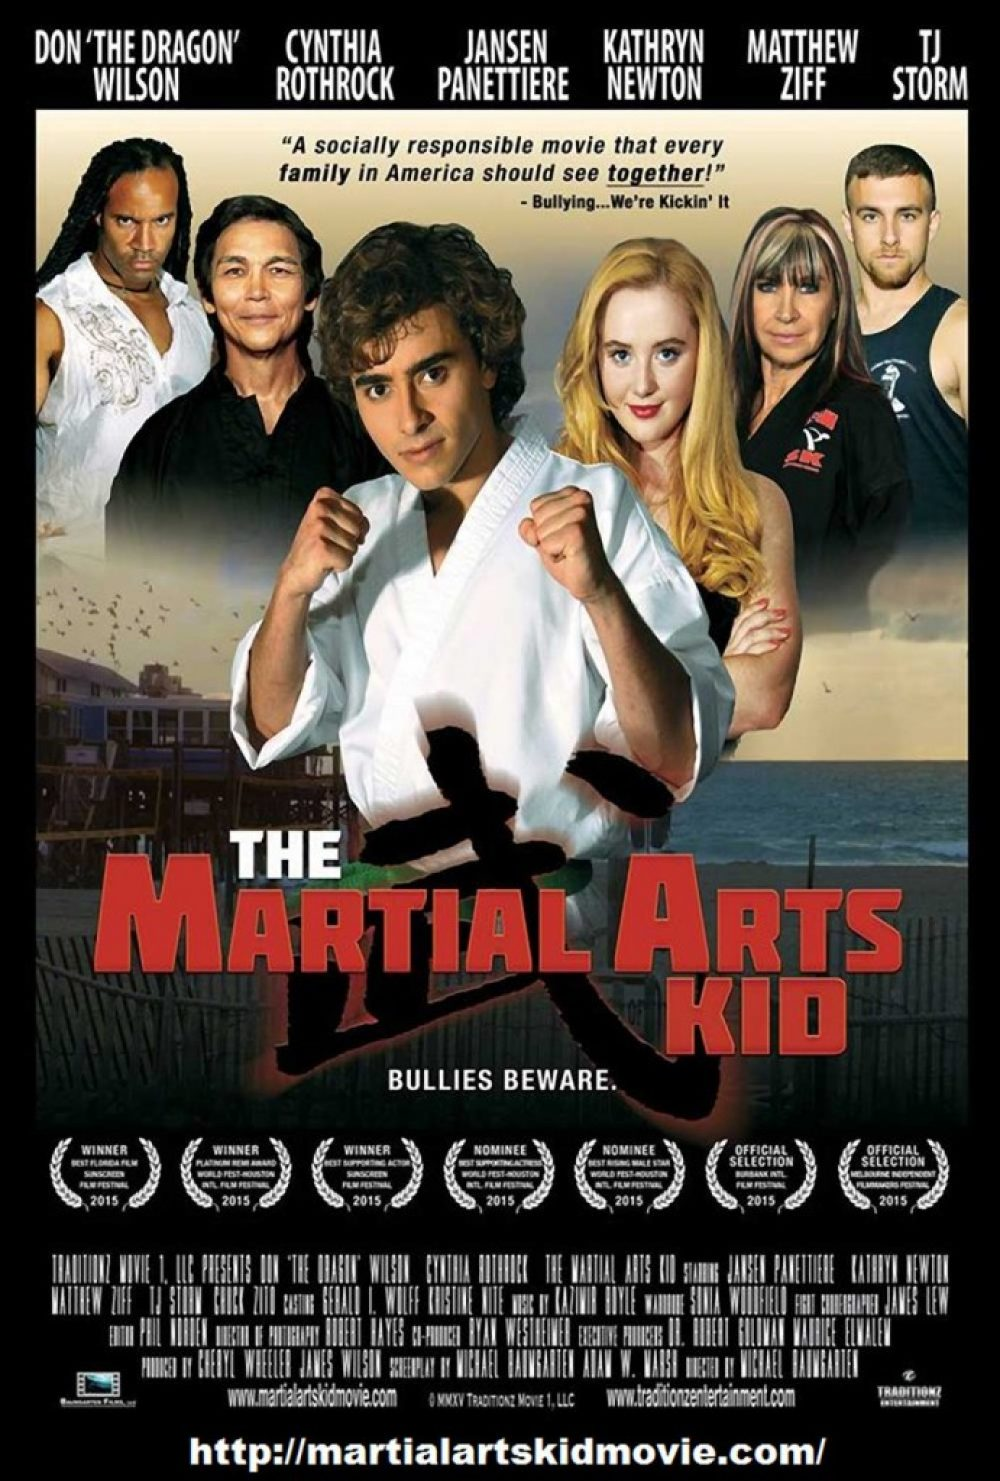 The Martial Arts Kid Poster With Awards Listed